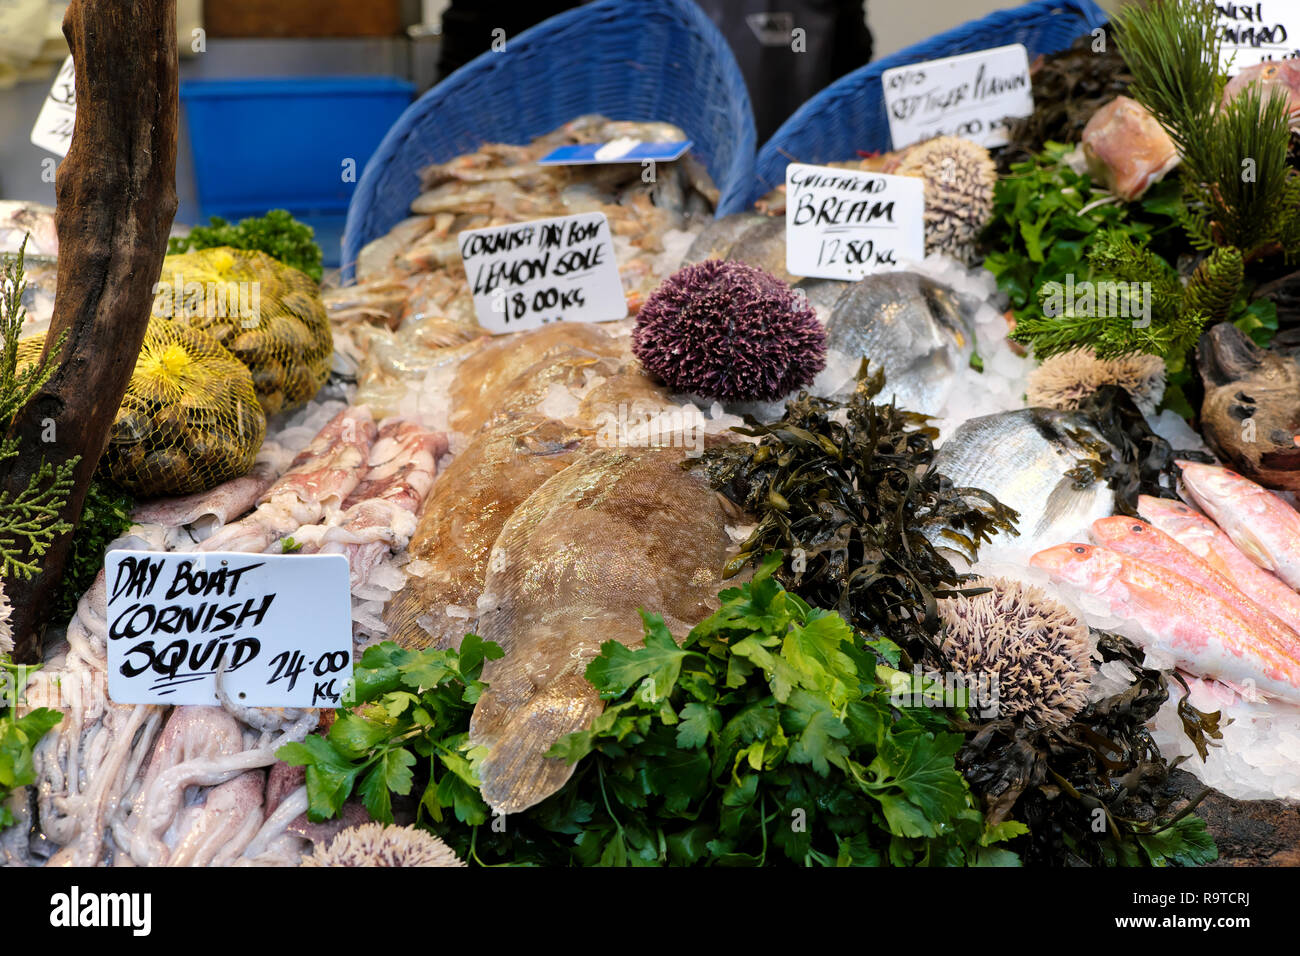 Borough Market London fish stall display of  Cornish squid, Lemon Sole & Gateshead Bream with parsley and various seafood in Britain UK  KATHY DEWITT Stock Photo